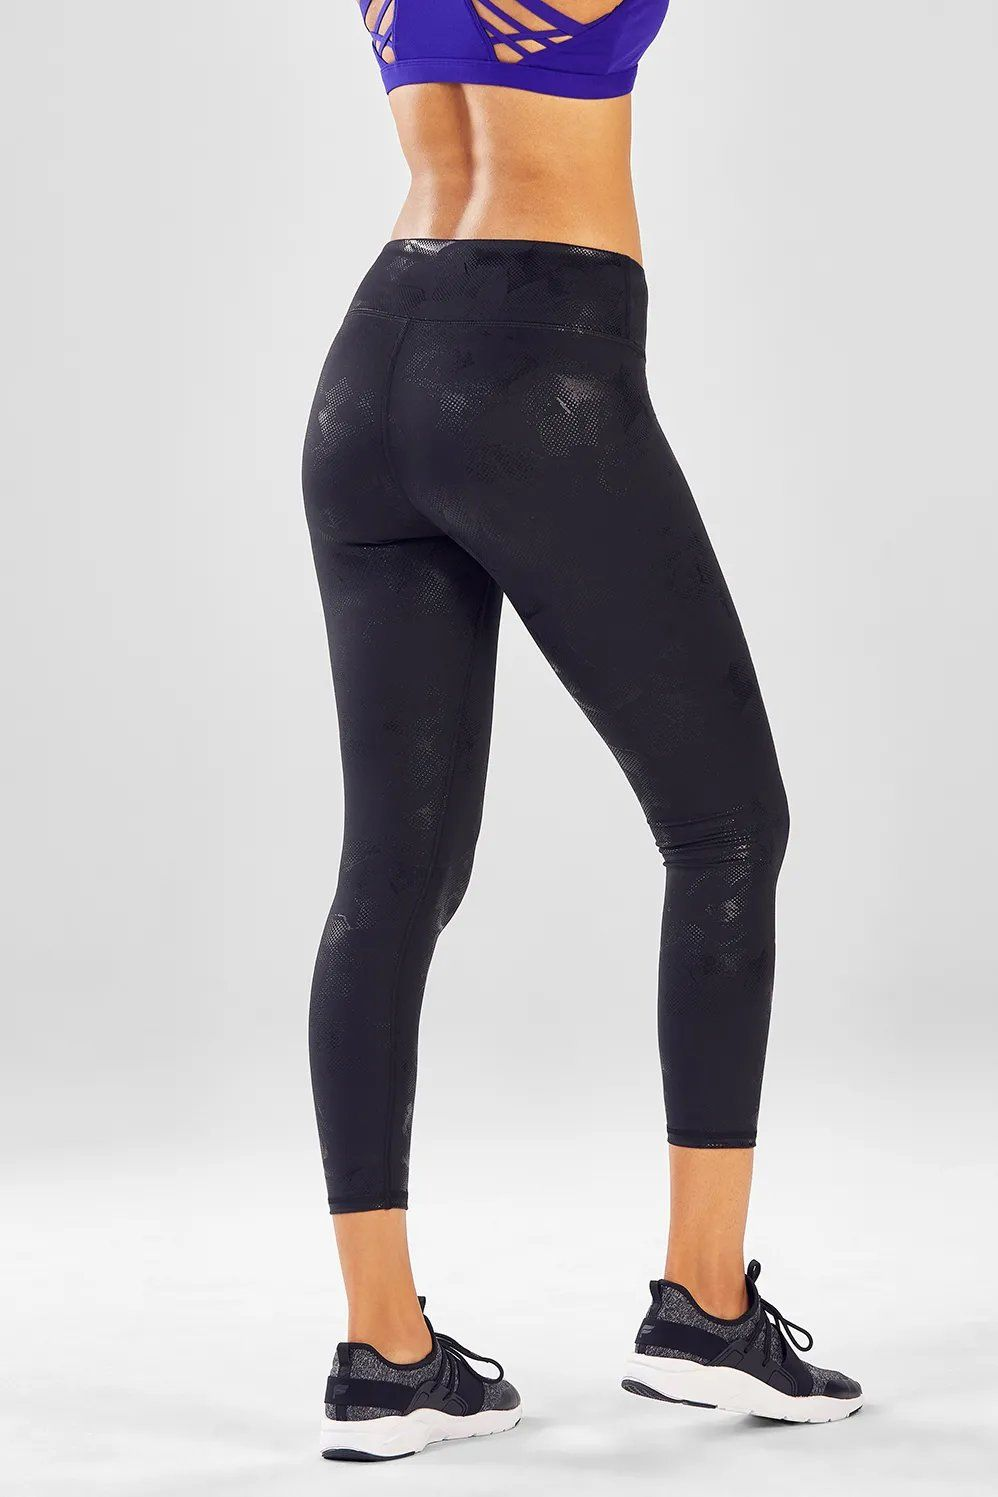 6c016cd1bb82f Make every move easier in our best-selling bottoms. These leggings have  moisture-resistant features and cropped length which are ideal for all  workouts.